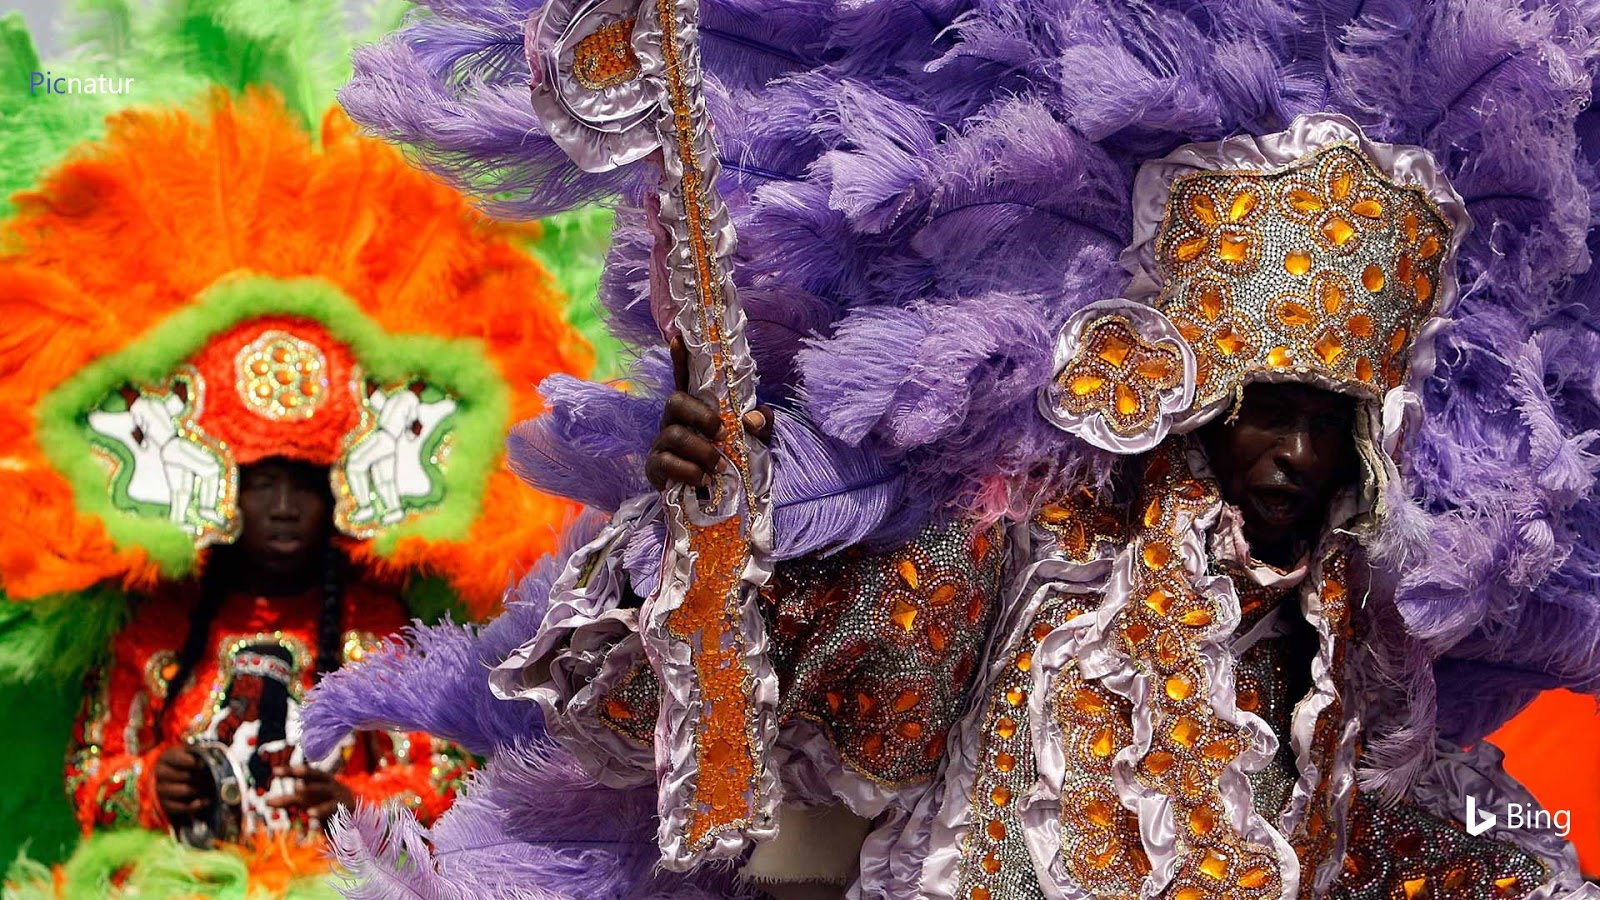 Members of the Wild Red Flame Mardi Gras Indians in New Orleans, Louisiana © Chris Graythen/Getty Images